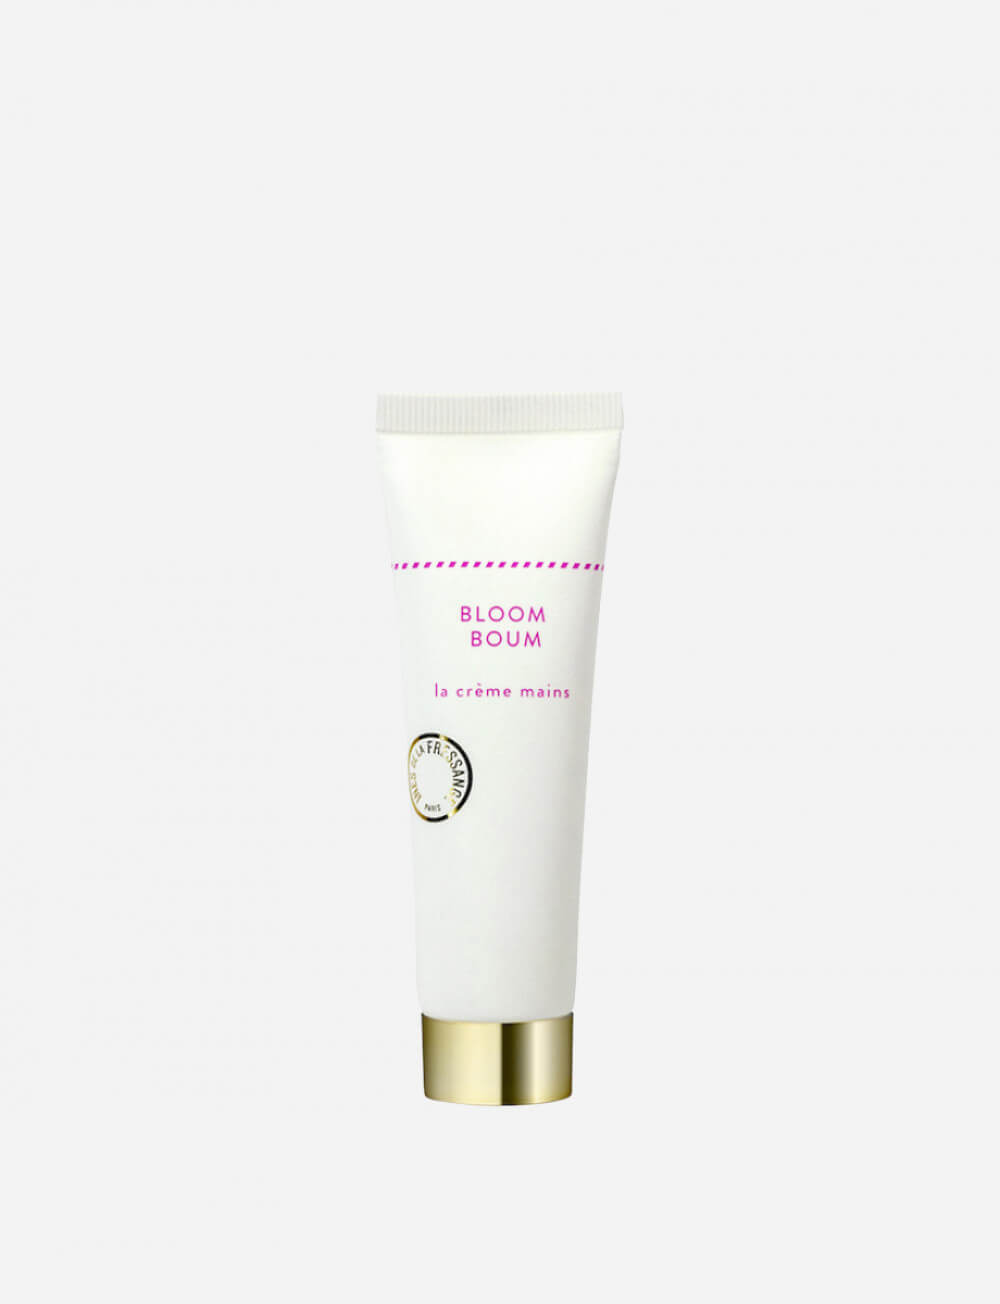 creme-main-bloom-boum-30ml